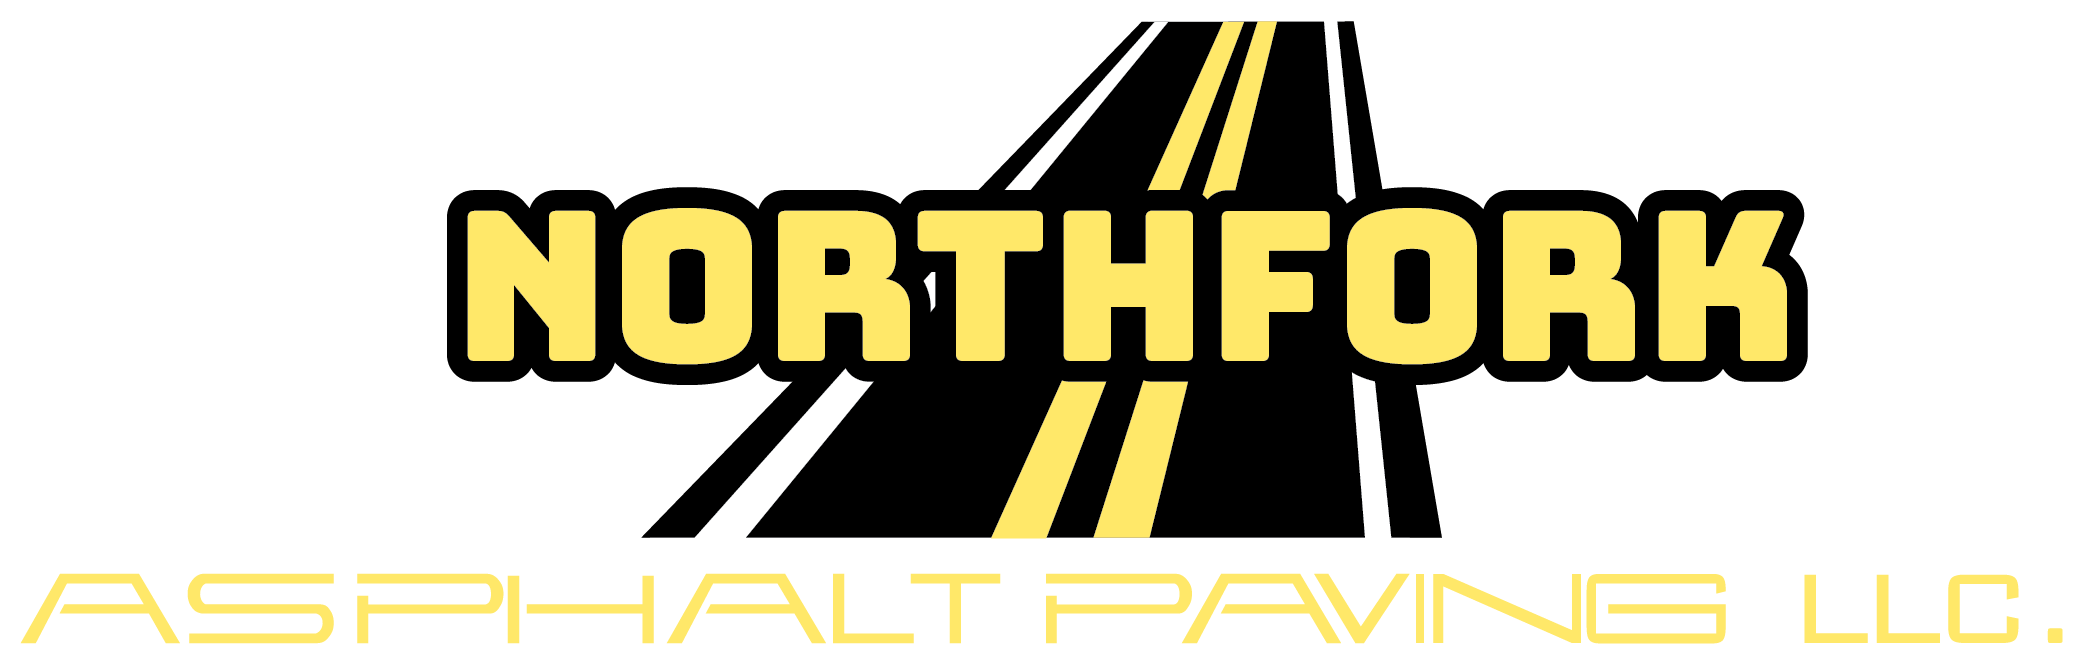 North Fork Asphalt Paving, Inc